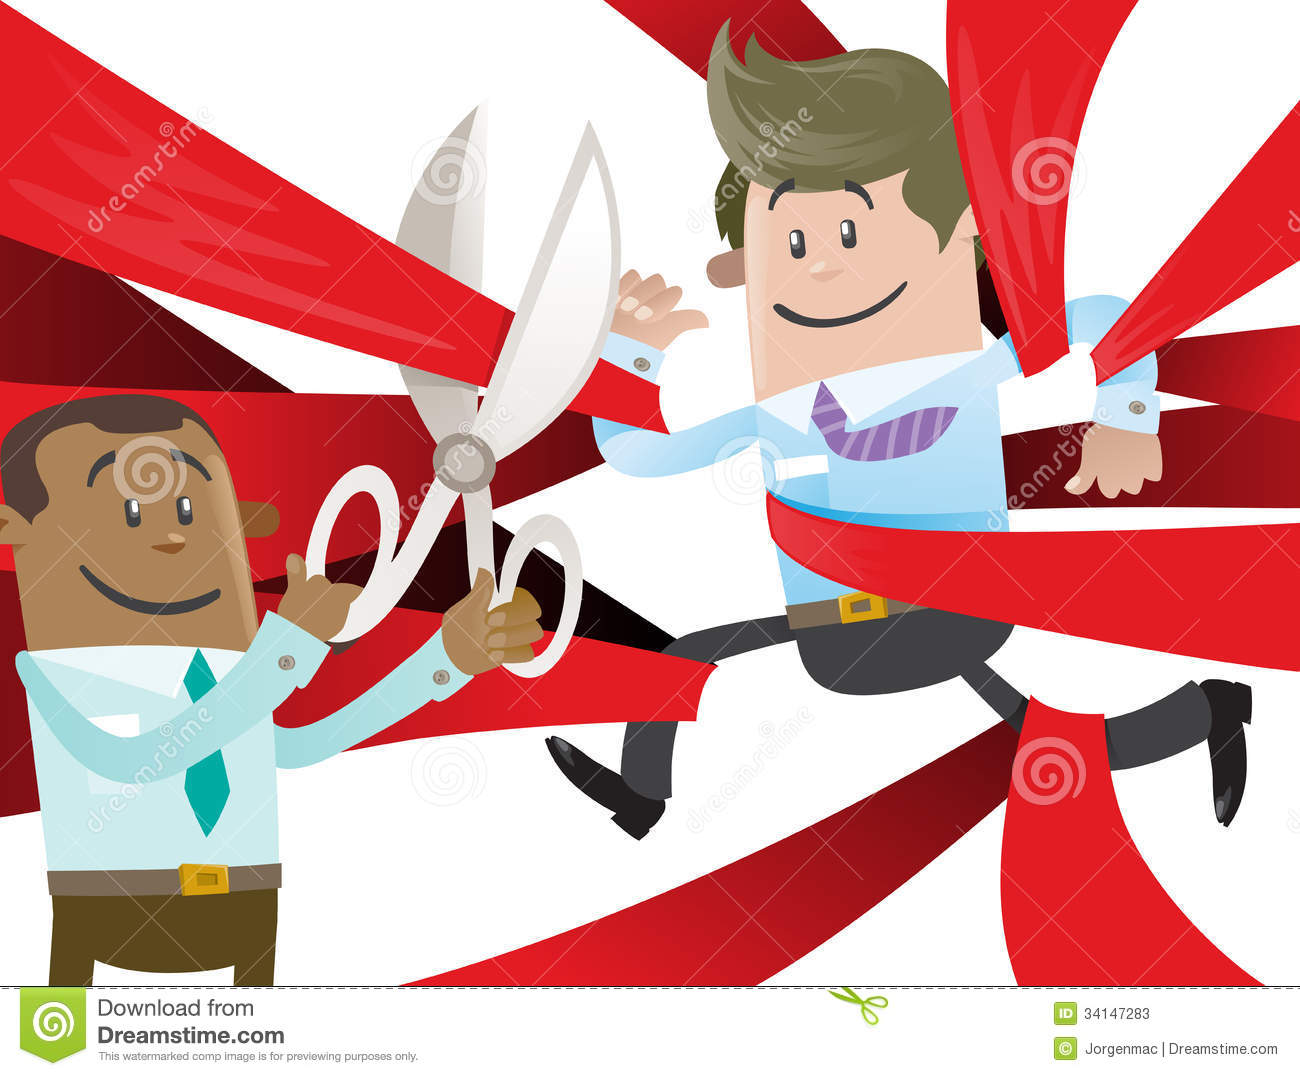 Business Buddy Is Cut Free From Red Tape. Cartoon Vector ...